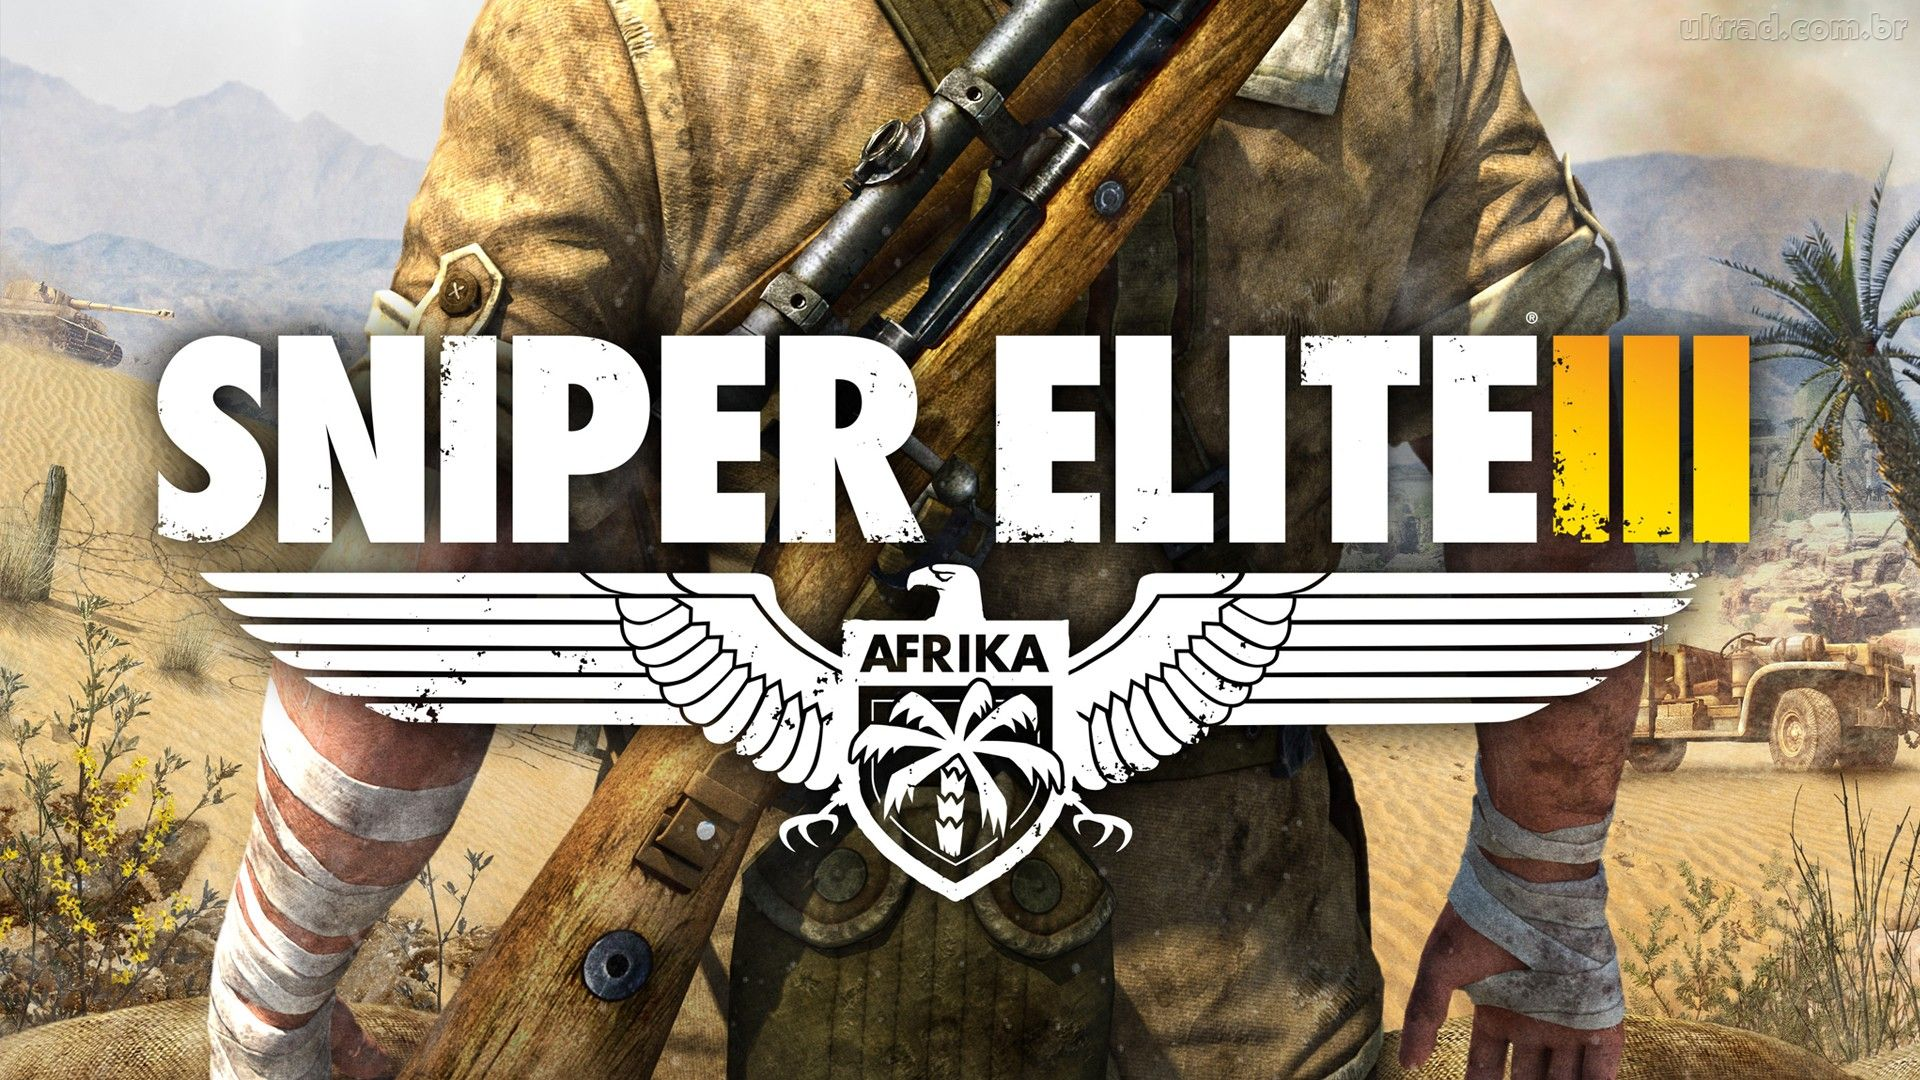 Video Game - Sniper Elite 3 Wallpaper